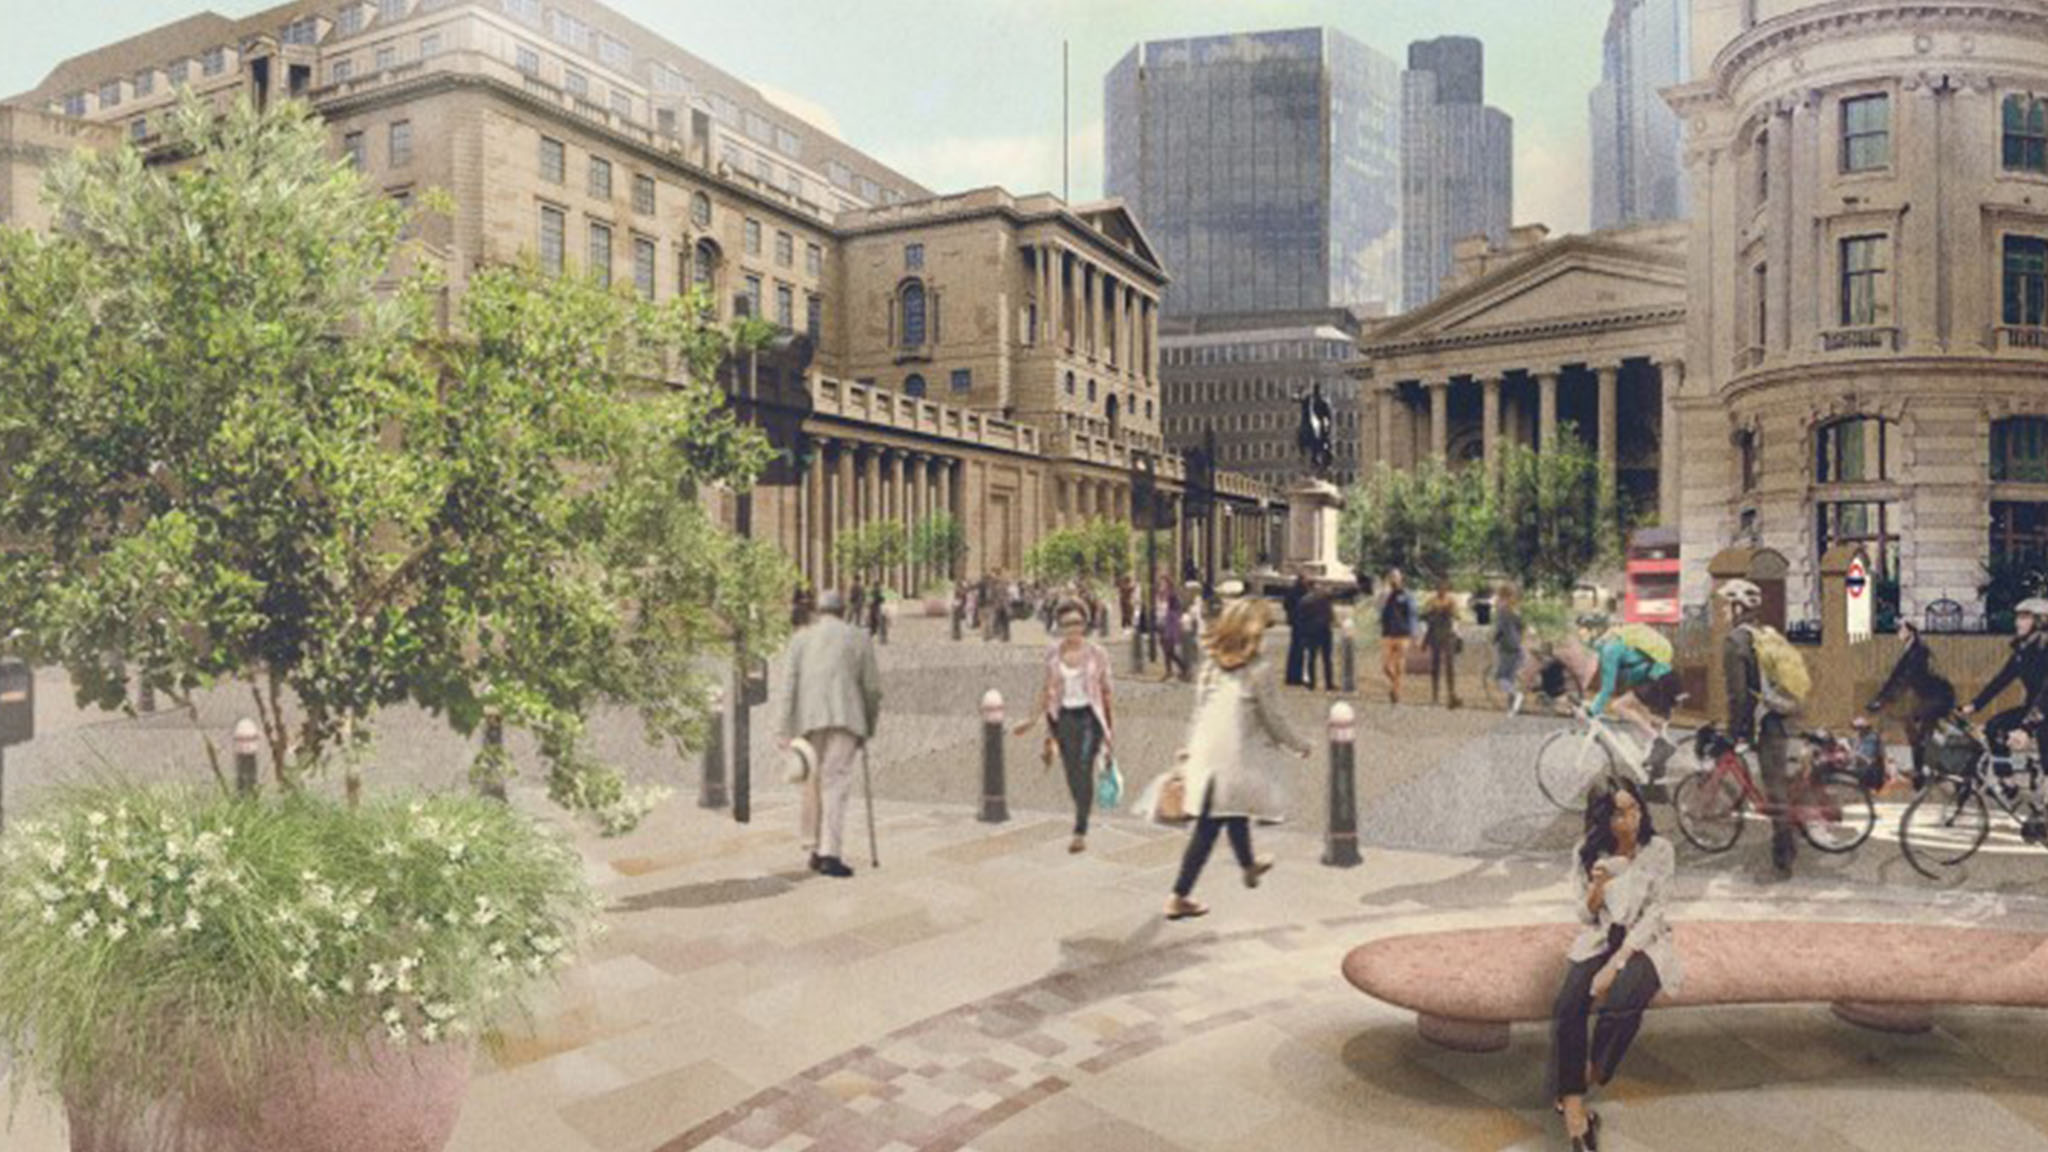 The City banks on creating 'world-class welcoming heart'